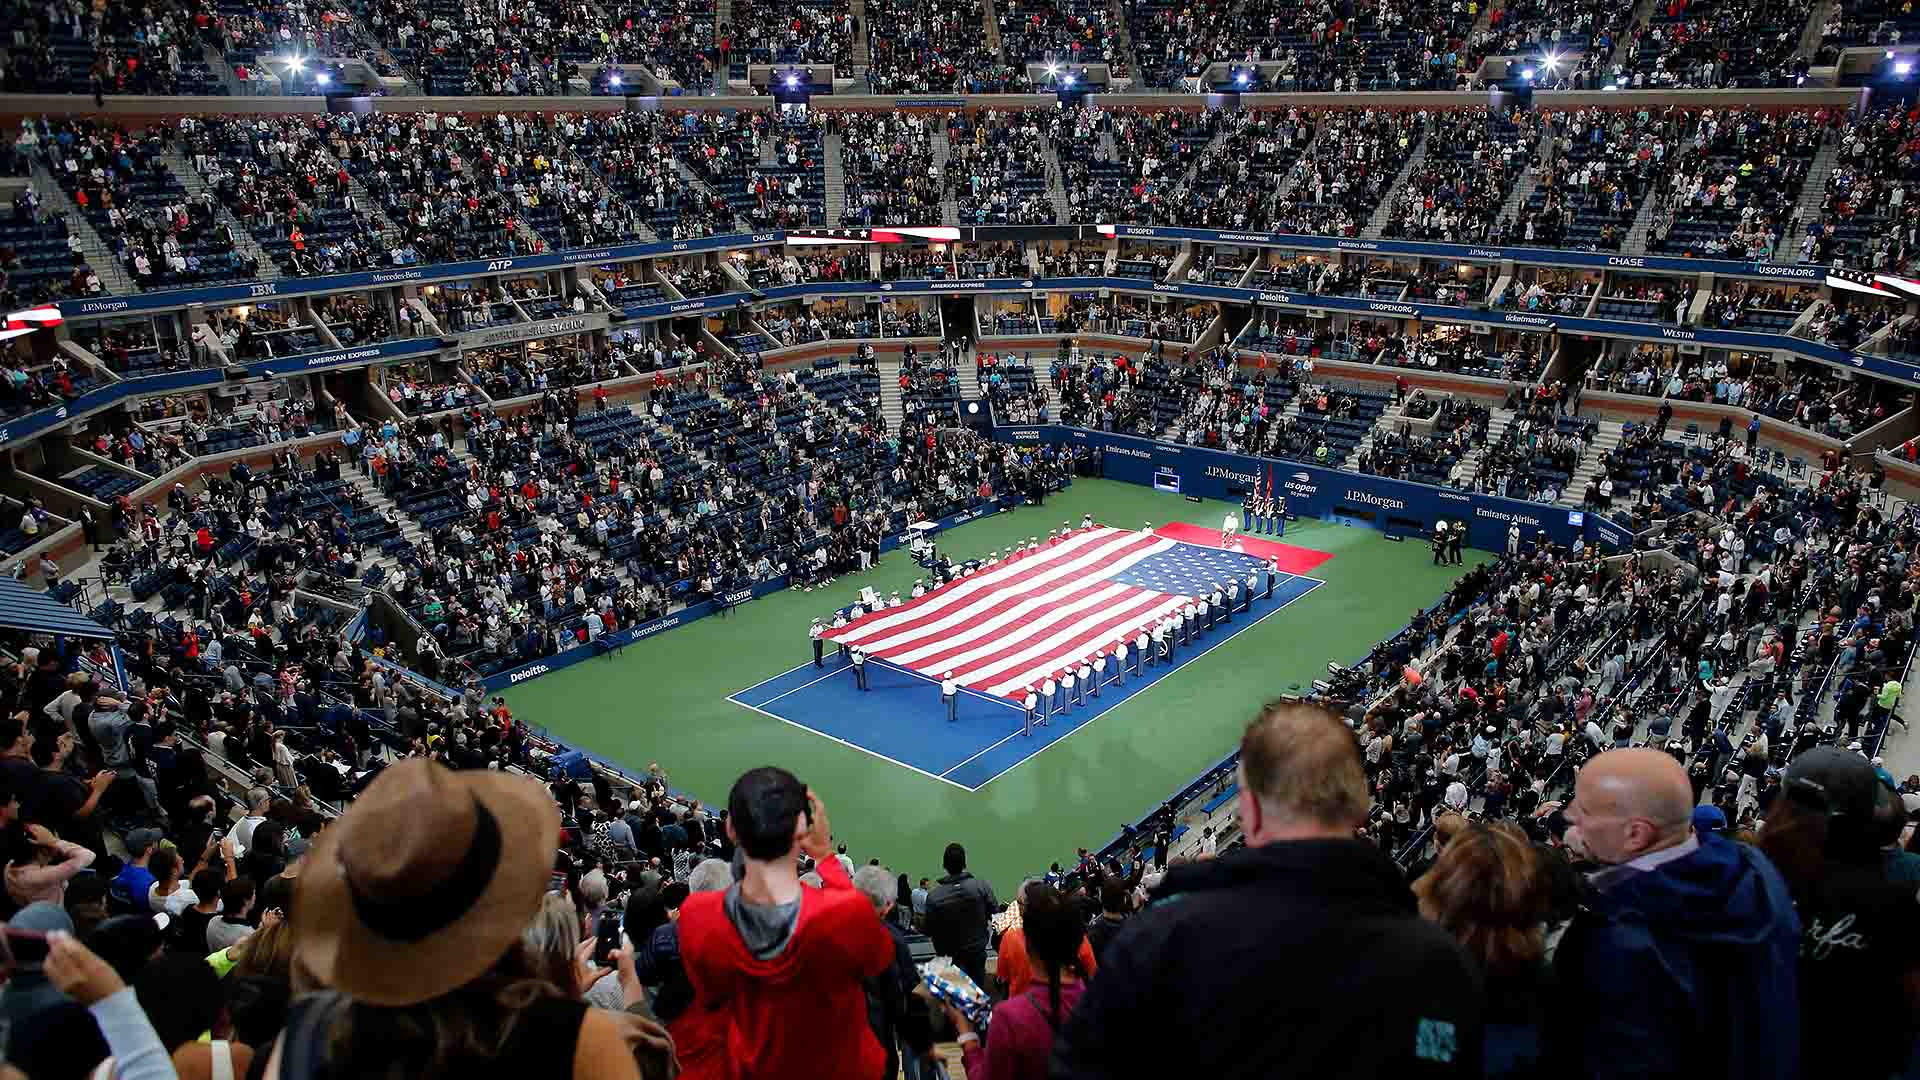 Djokovic Nadal Federer Return At The Us Open When Is The Draw More Atp Tour Tennis